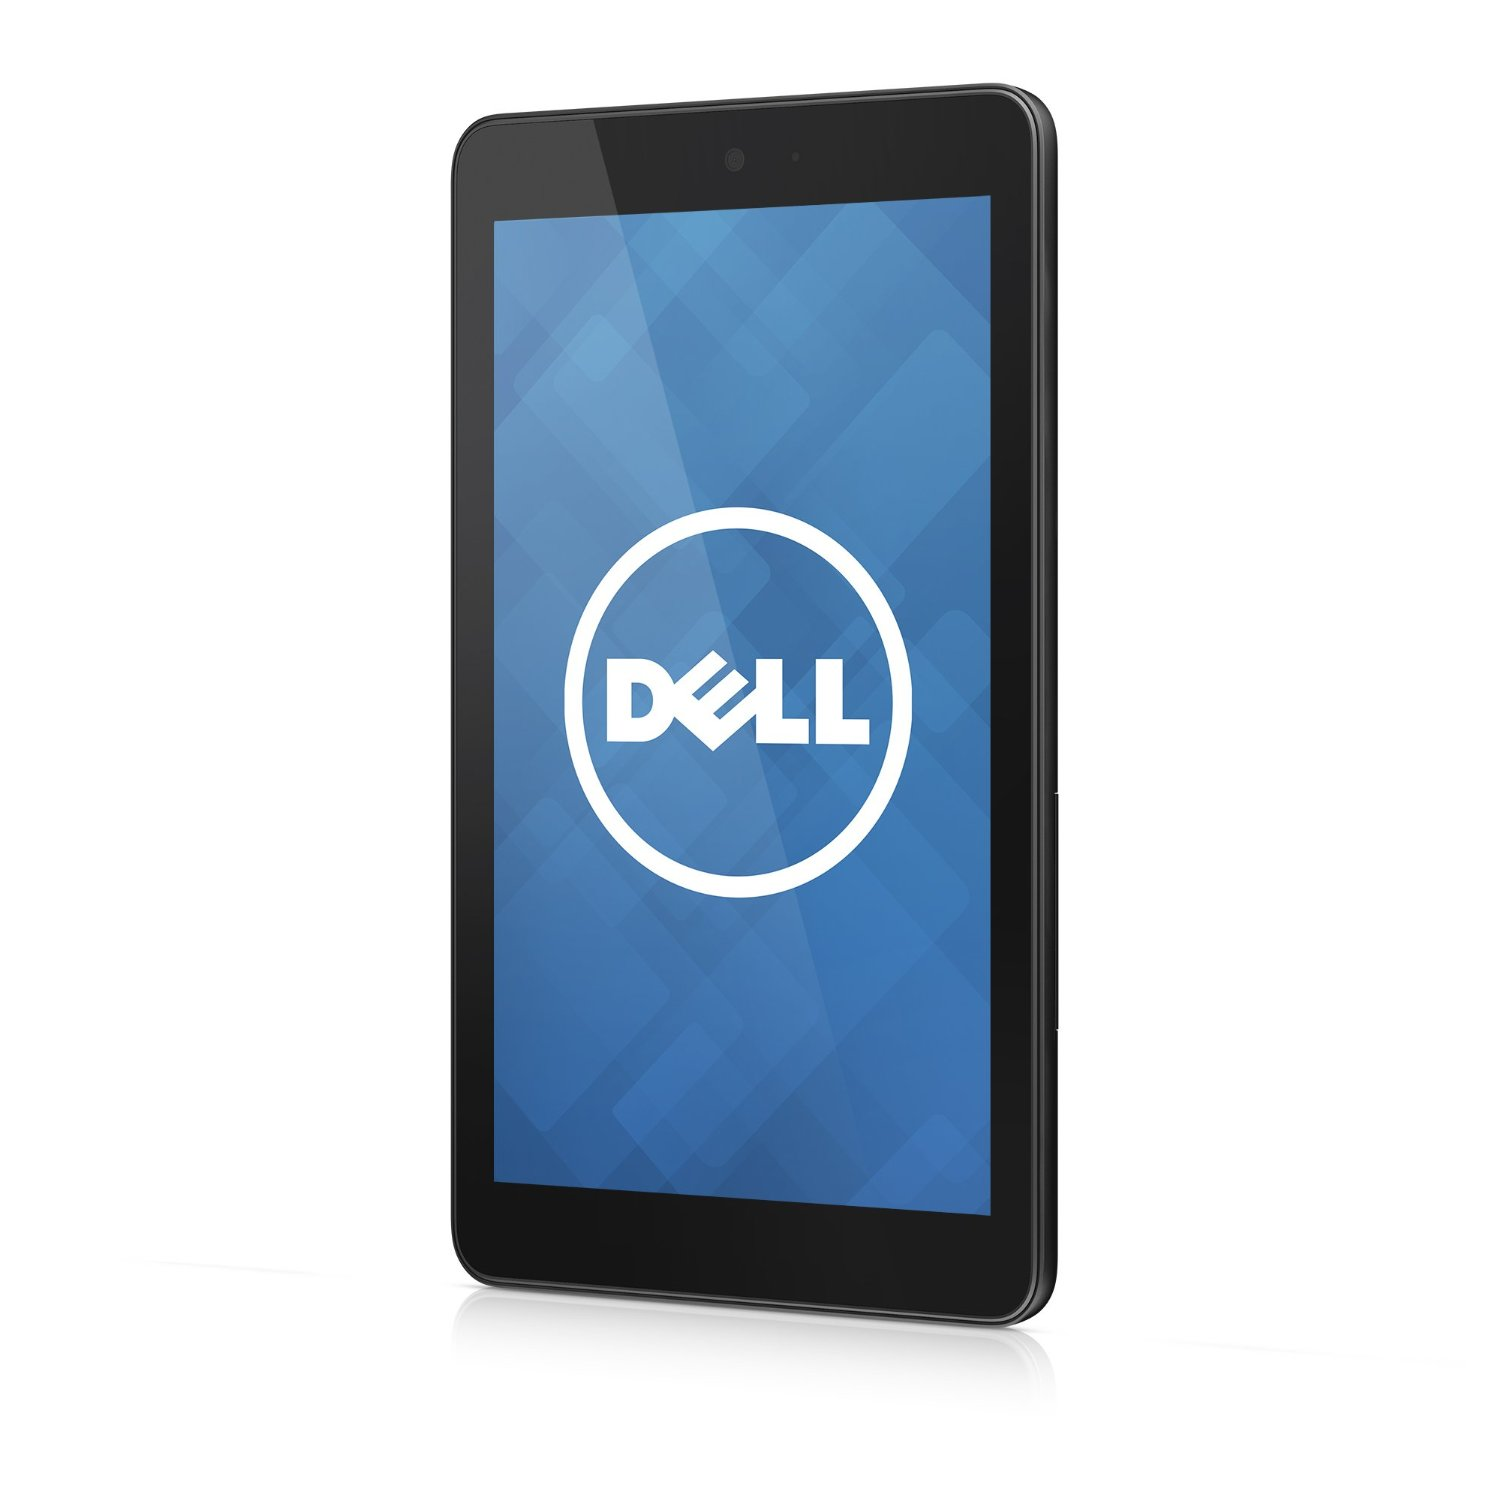 Dell Venue 8 Now Available For Pre-Order Online From $179.99